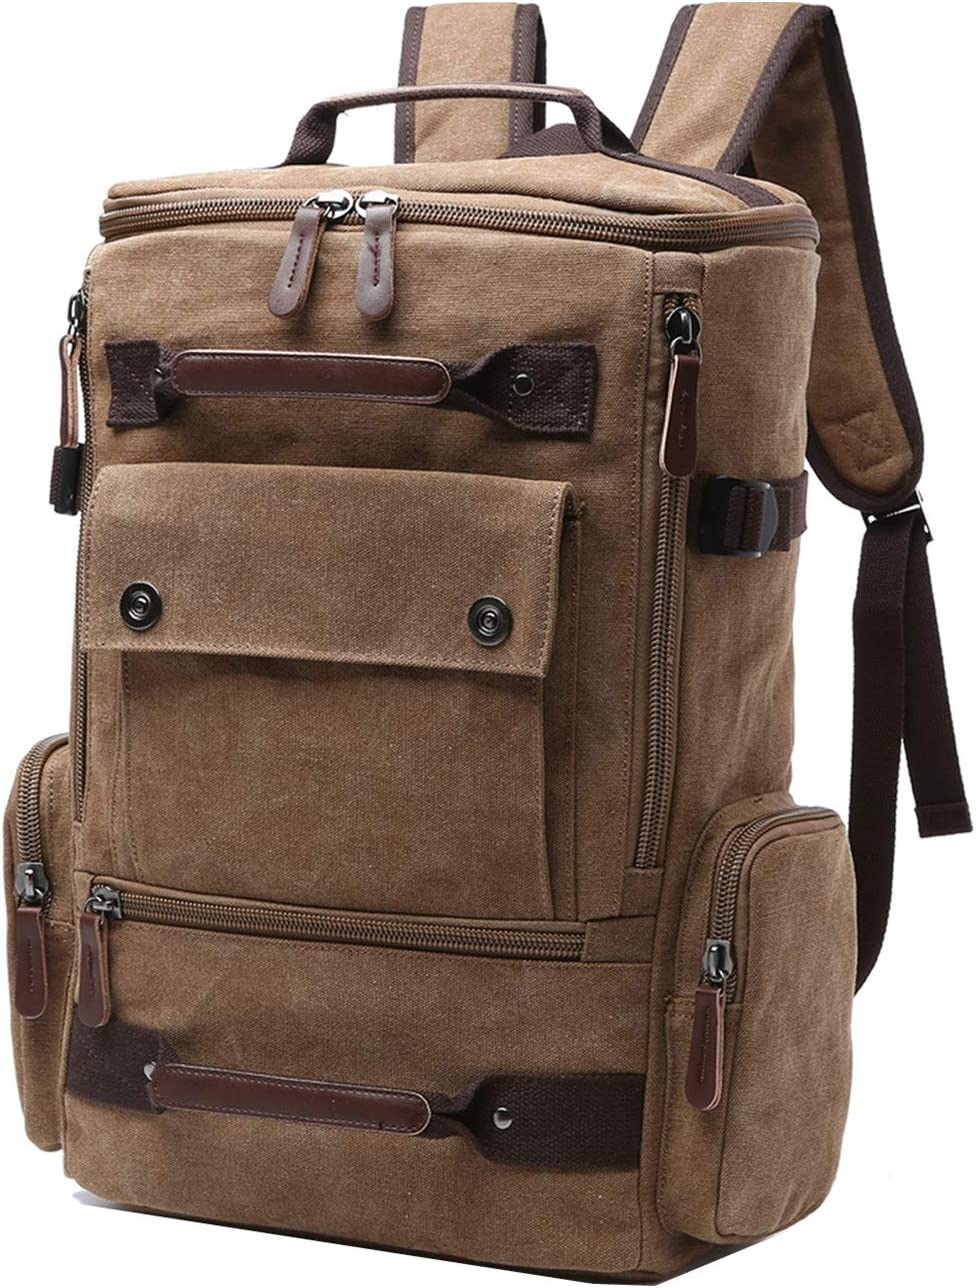 Canvas Backpack, Aidonger Vintage Canvas School Backpack Hiking Travel Rucksack Fits 15 Laptop Coffee